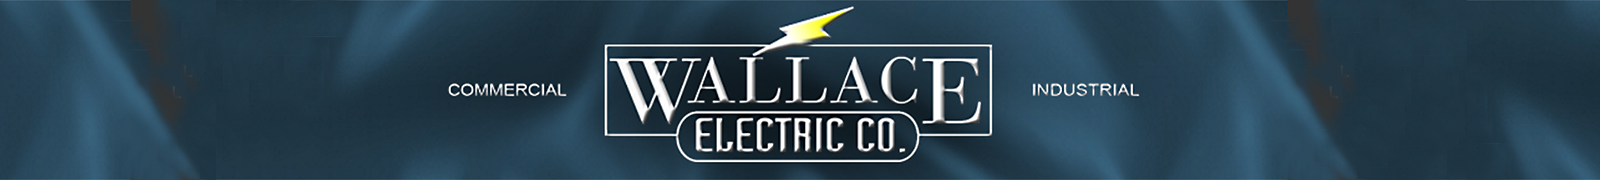 Wallace Electric Company - McDonough Georgia